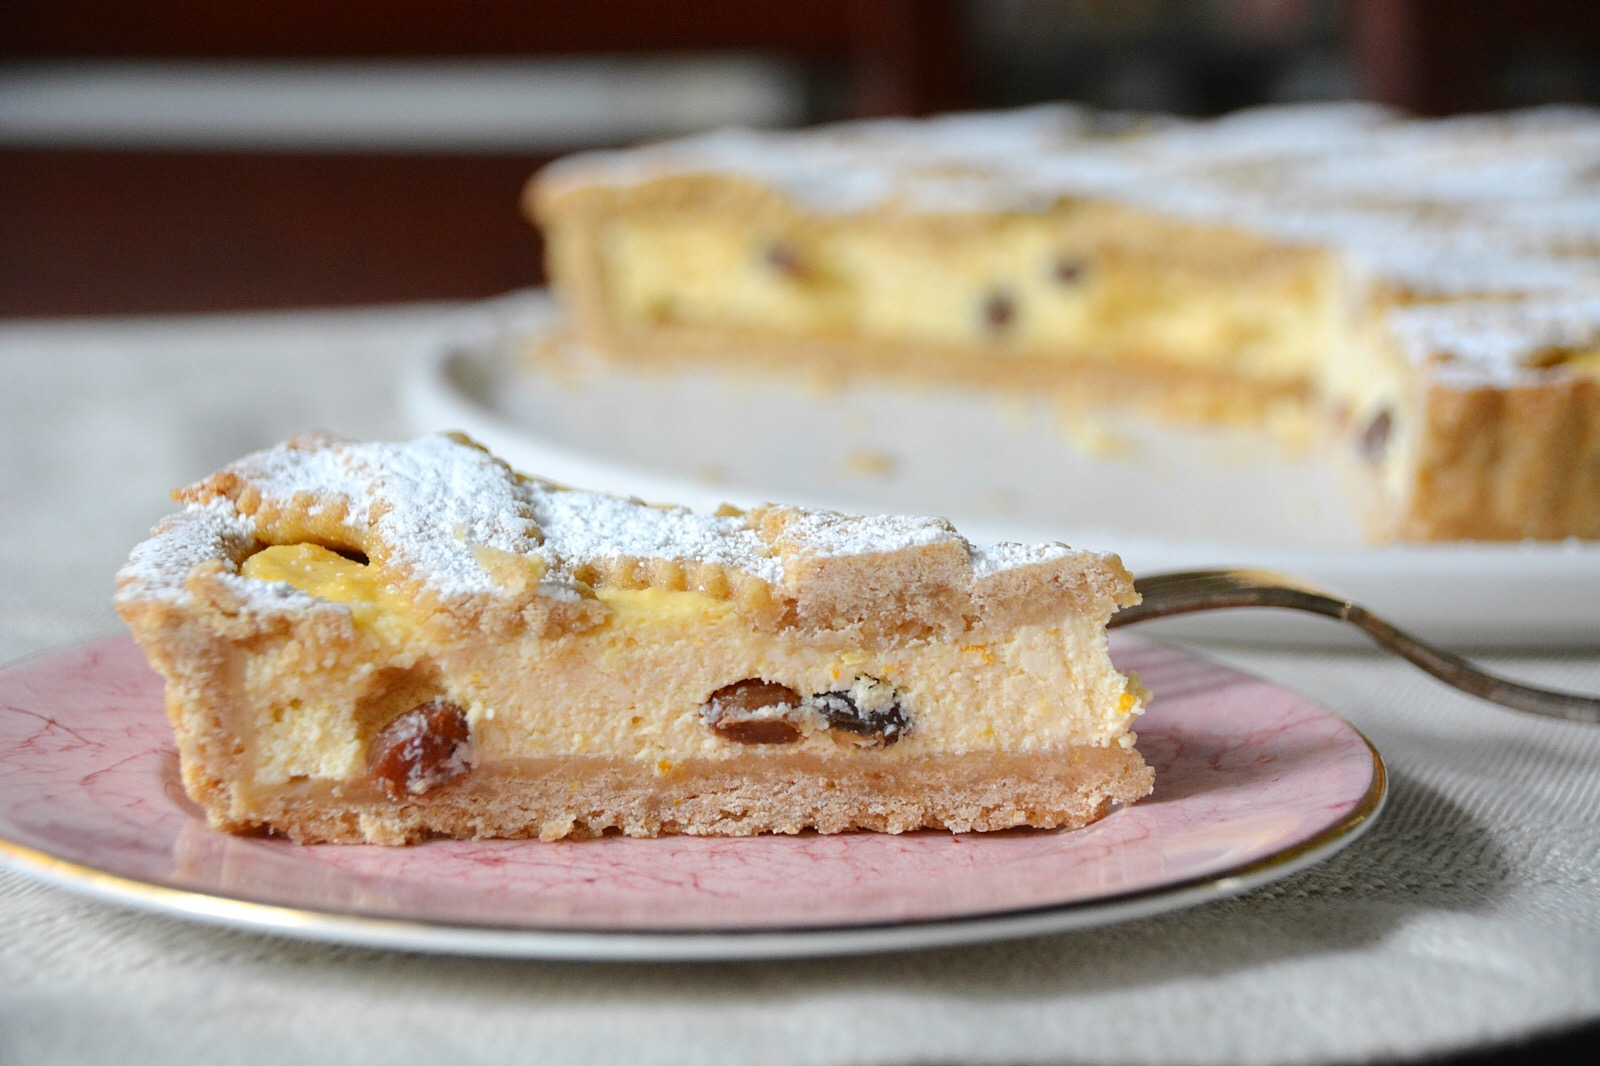 Crostata di ricotta – a new favourite